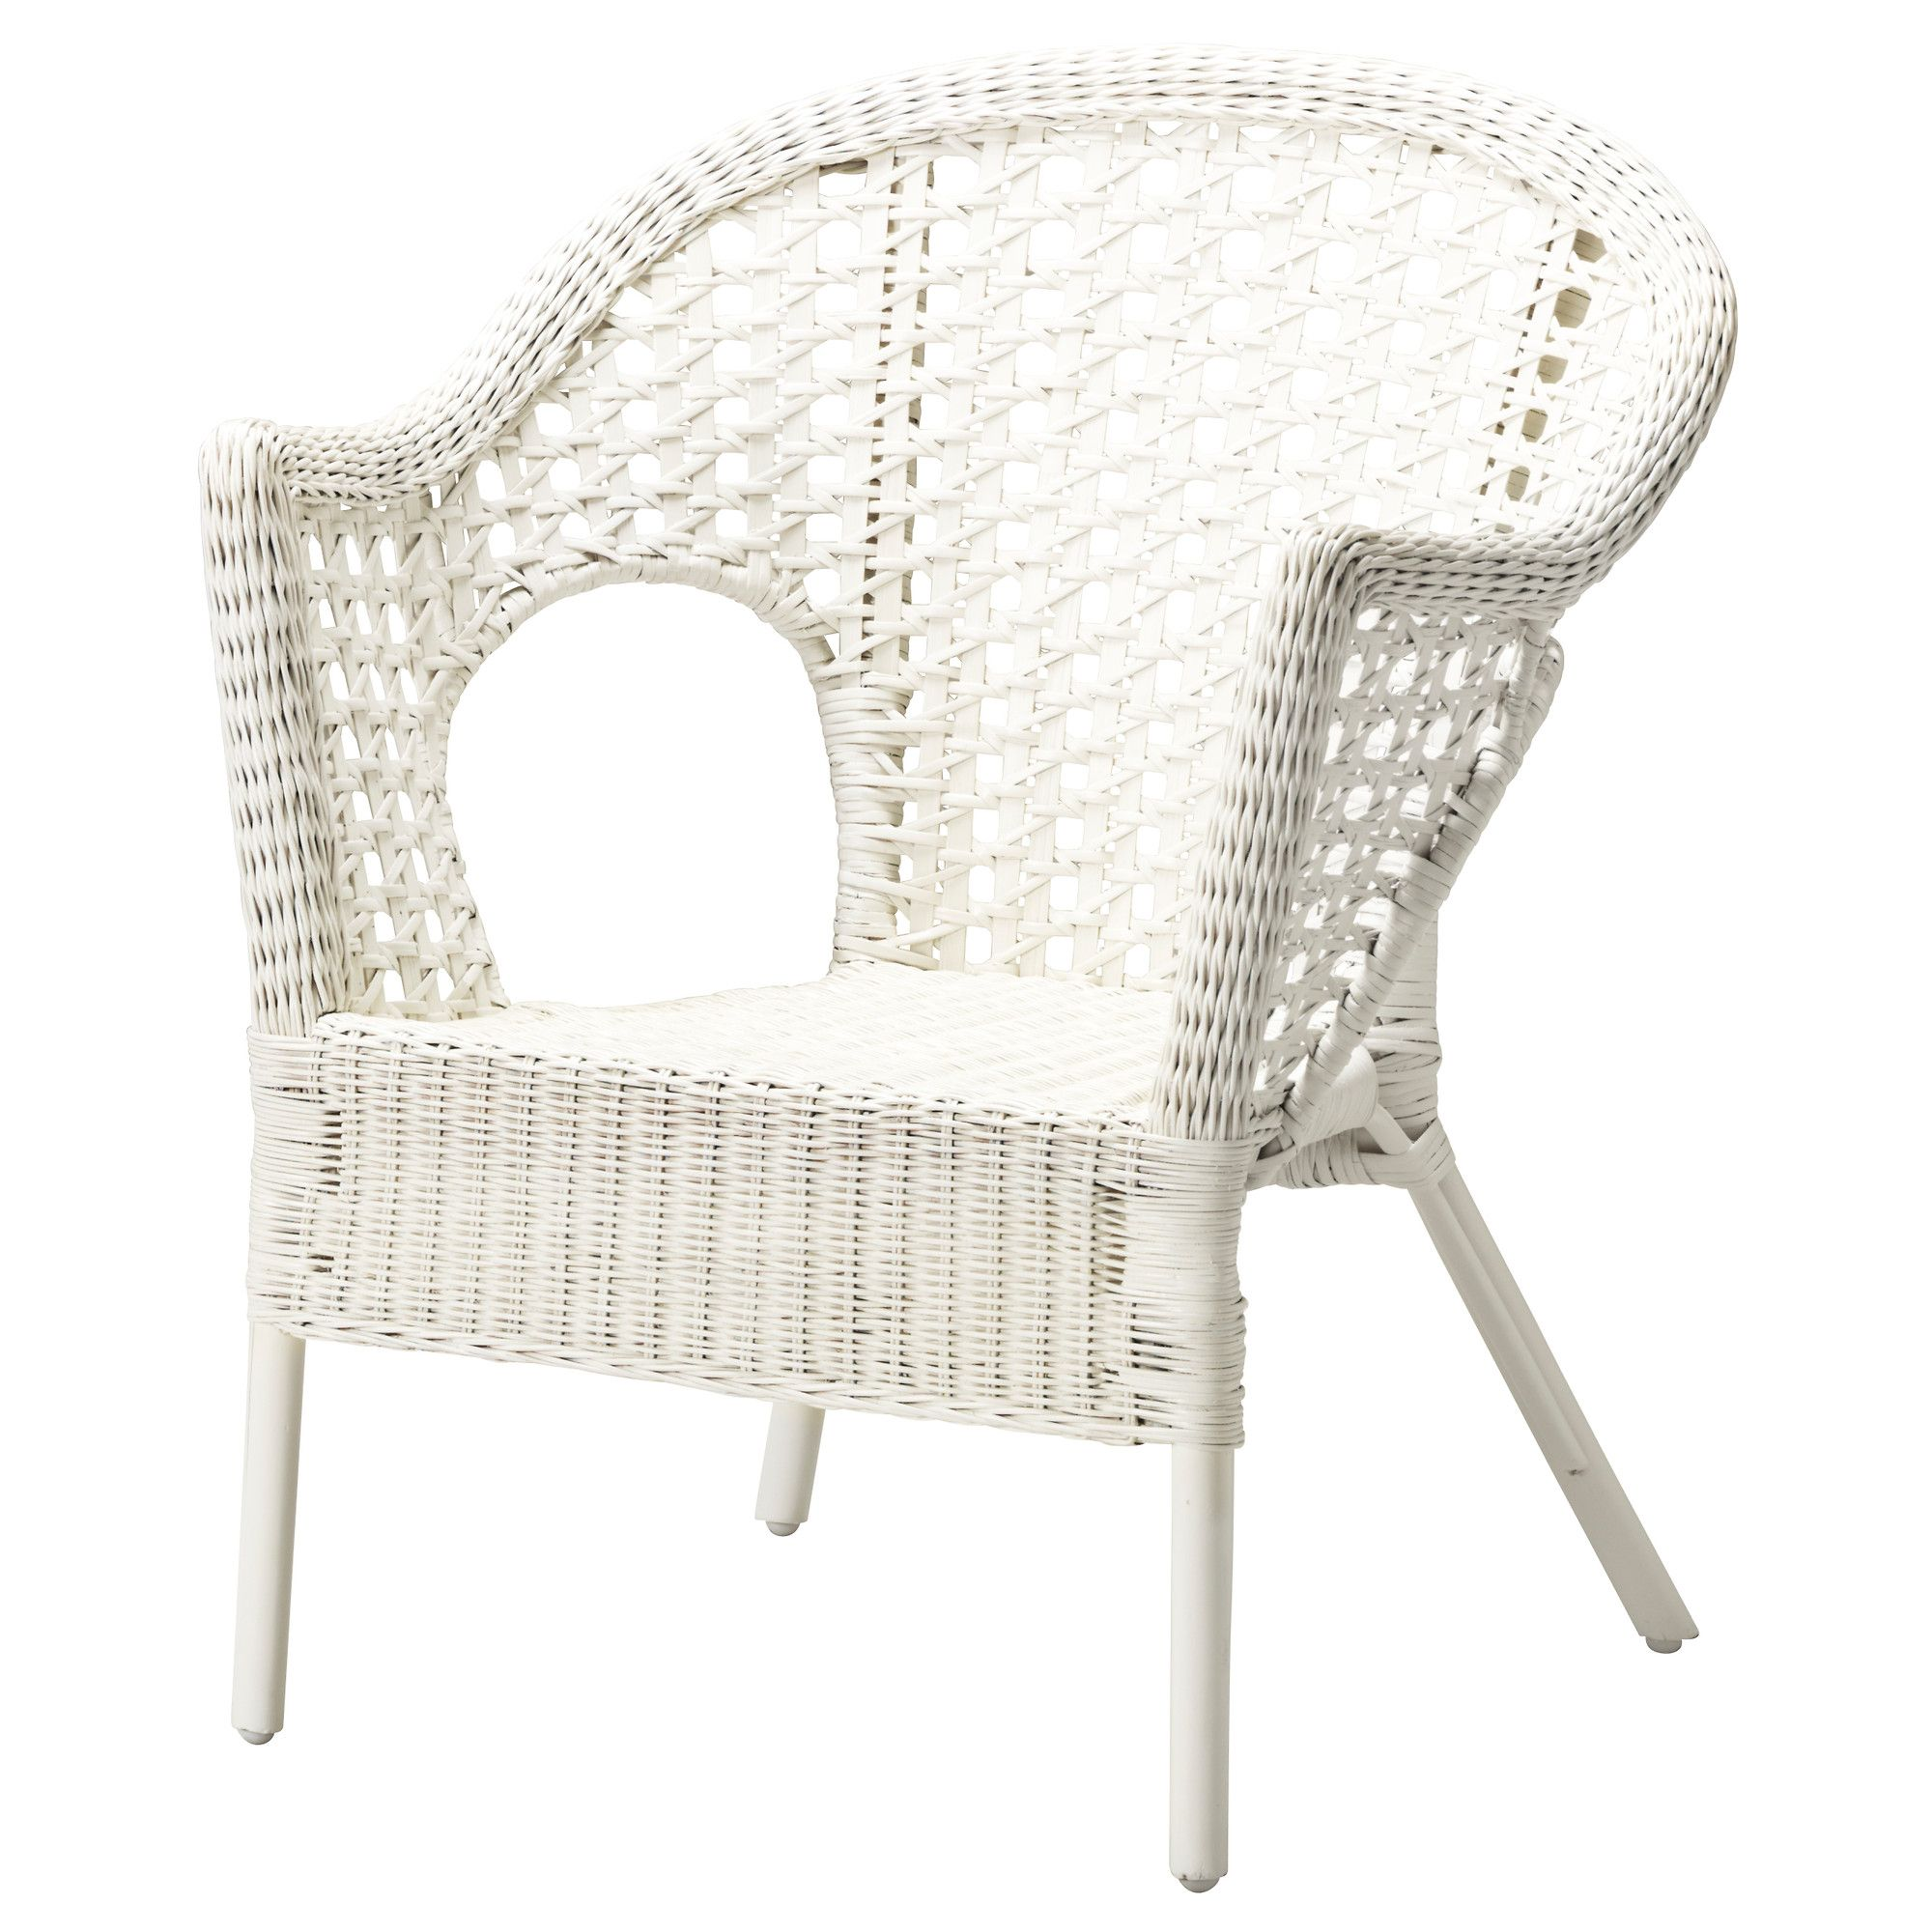 ikea finntorp chair the furniture is handmade and therefore